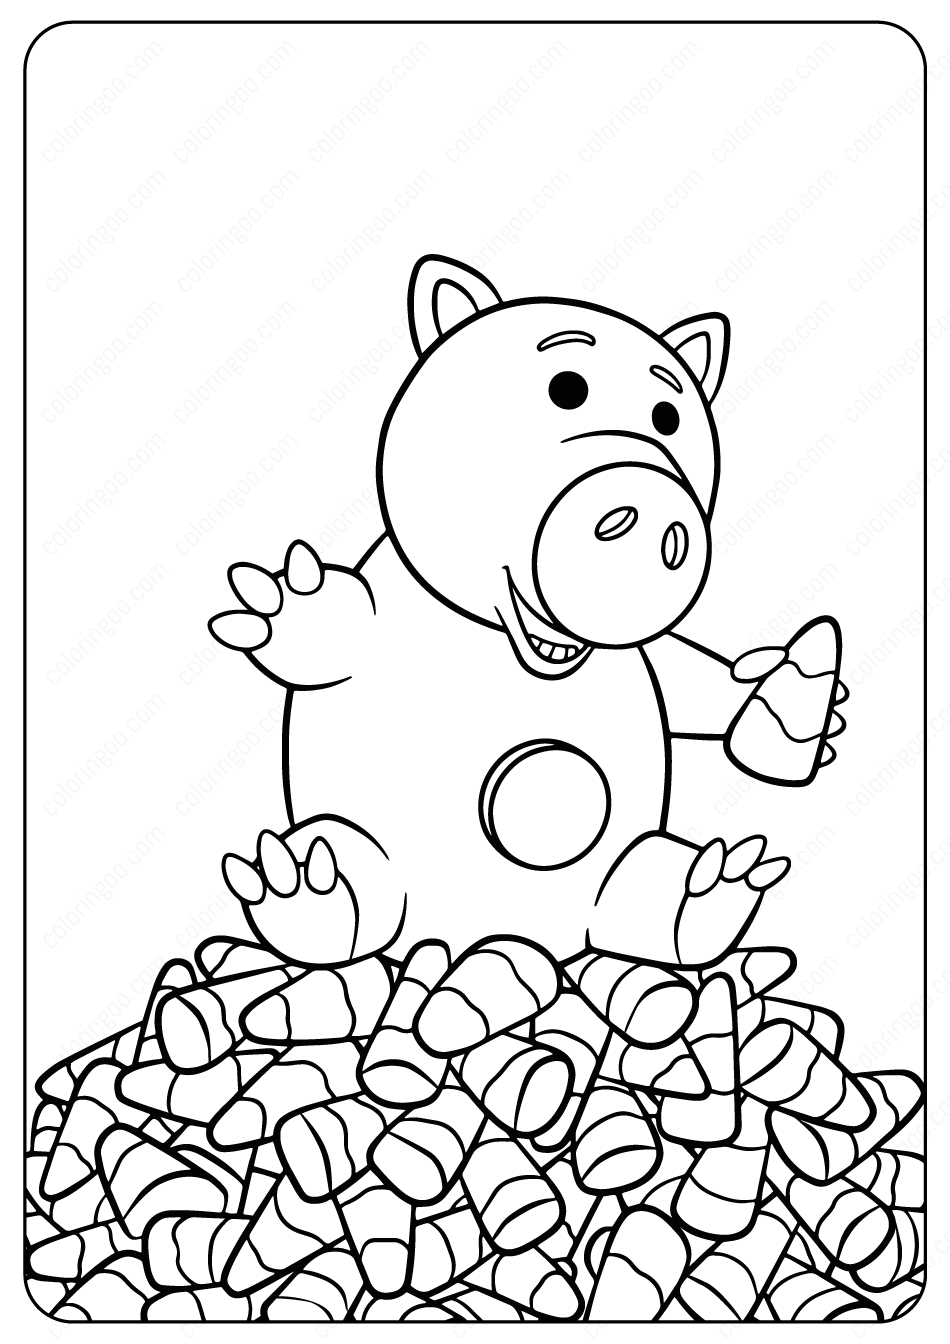 Toy Story Halloween Coloring Designs Trend